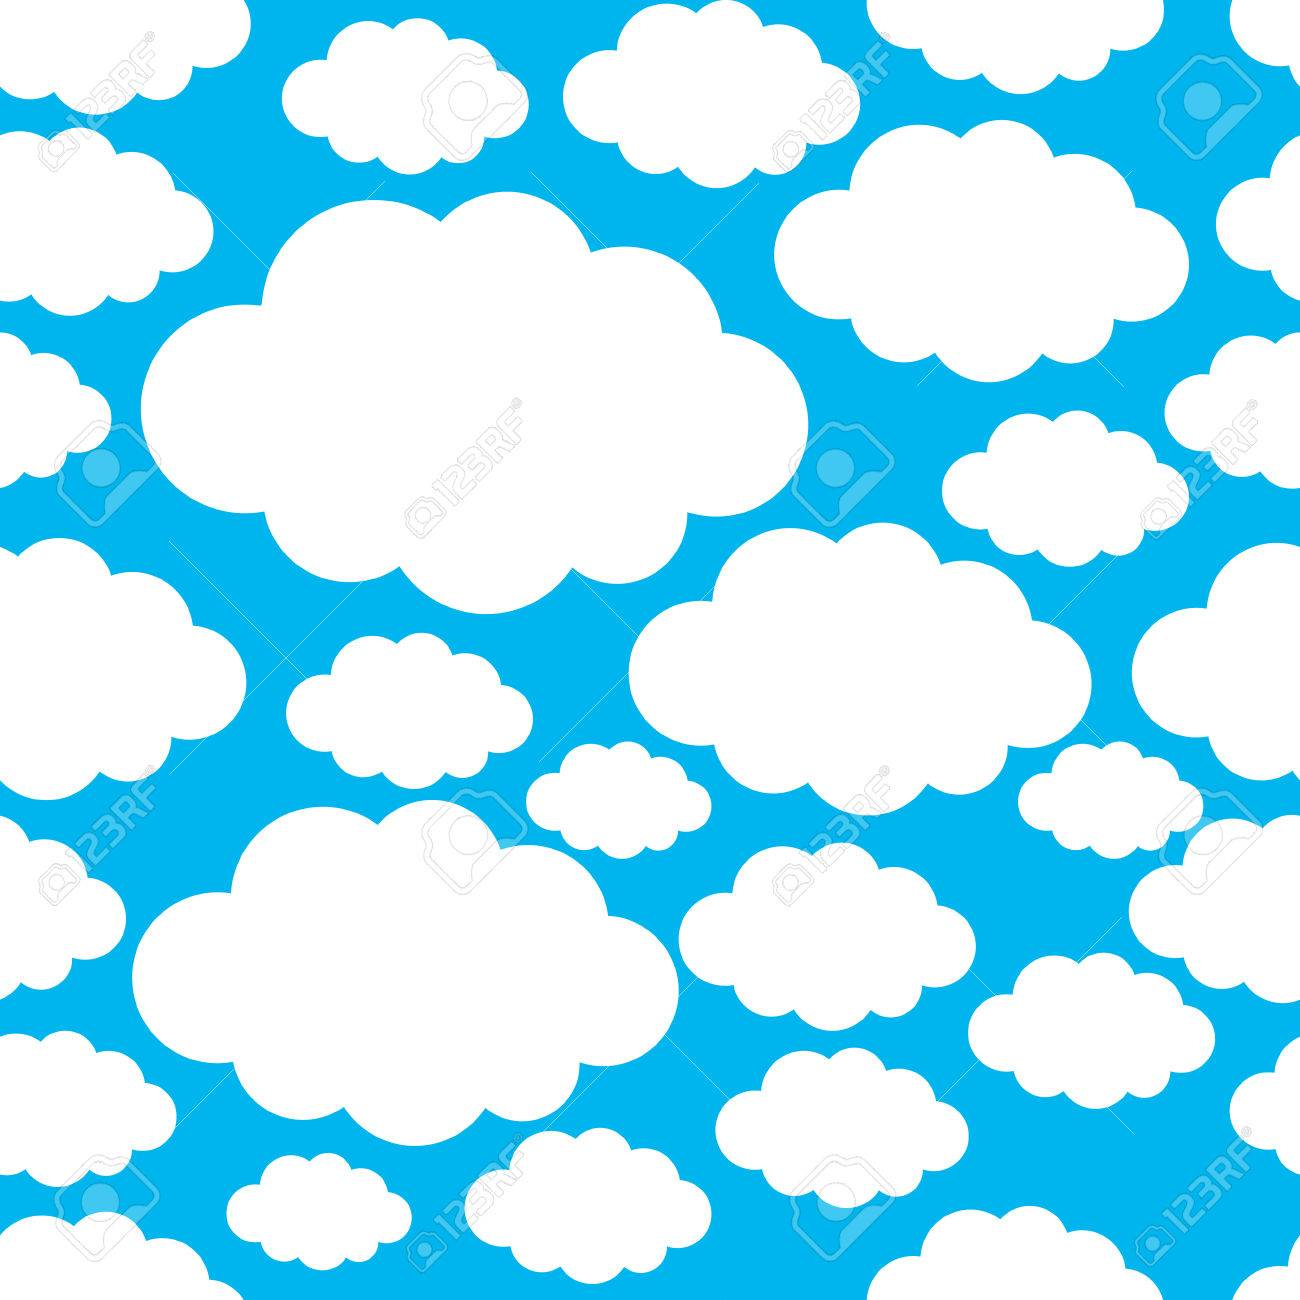 Seamless pattern with white clouds - 43128036